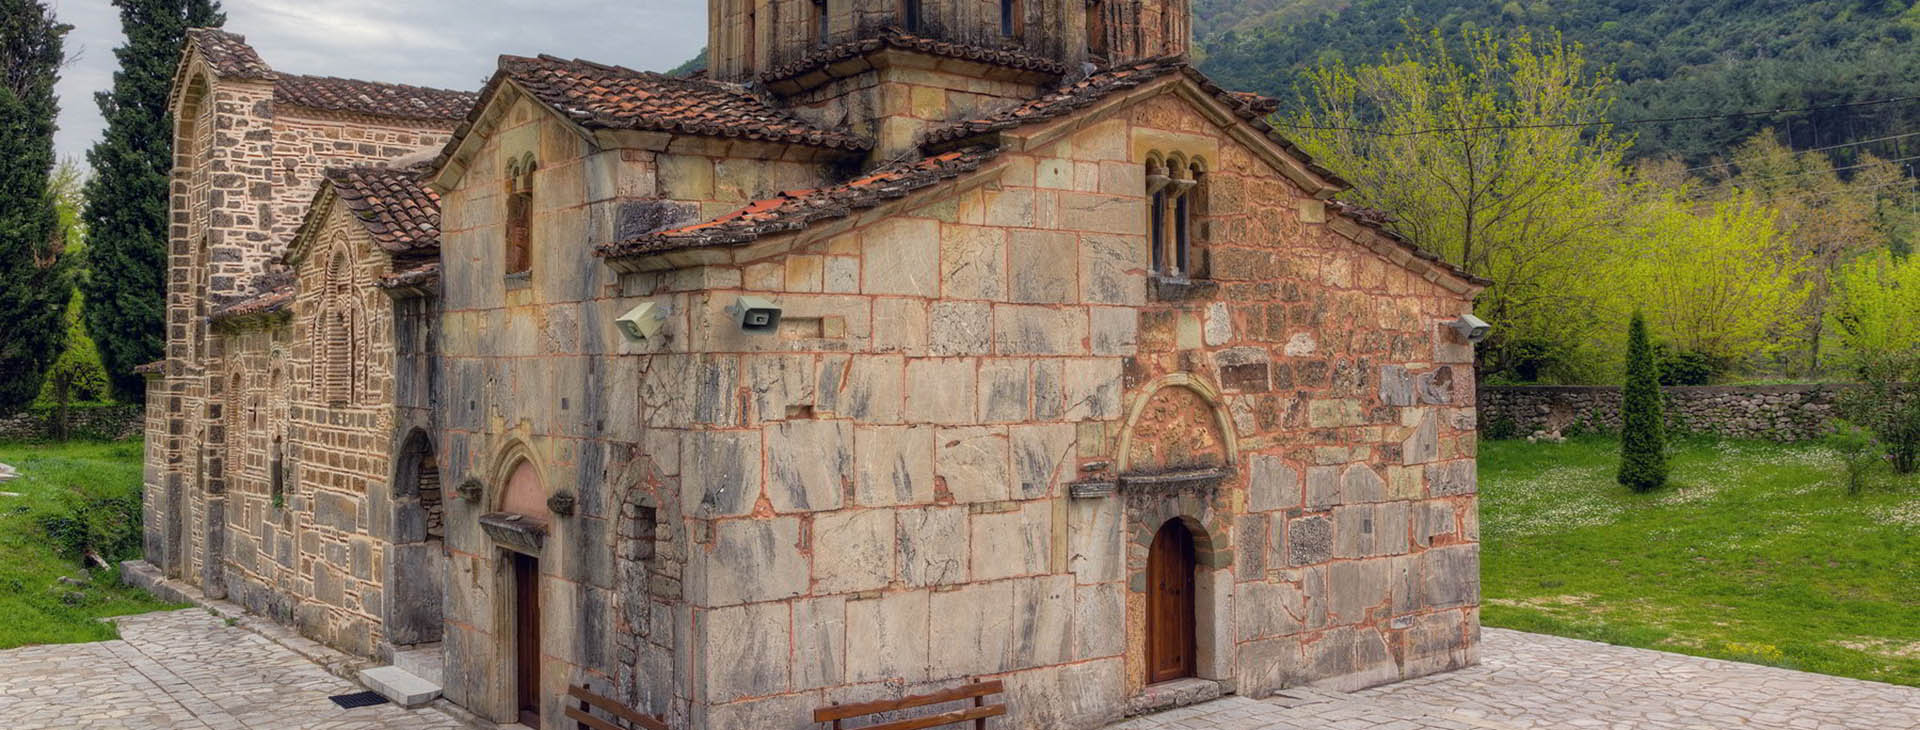 St. Vissarion church, Elati, Trikala